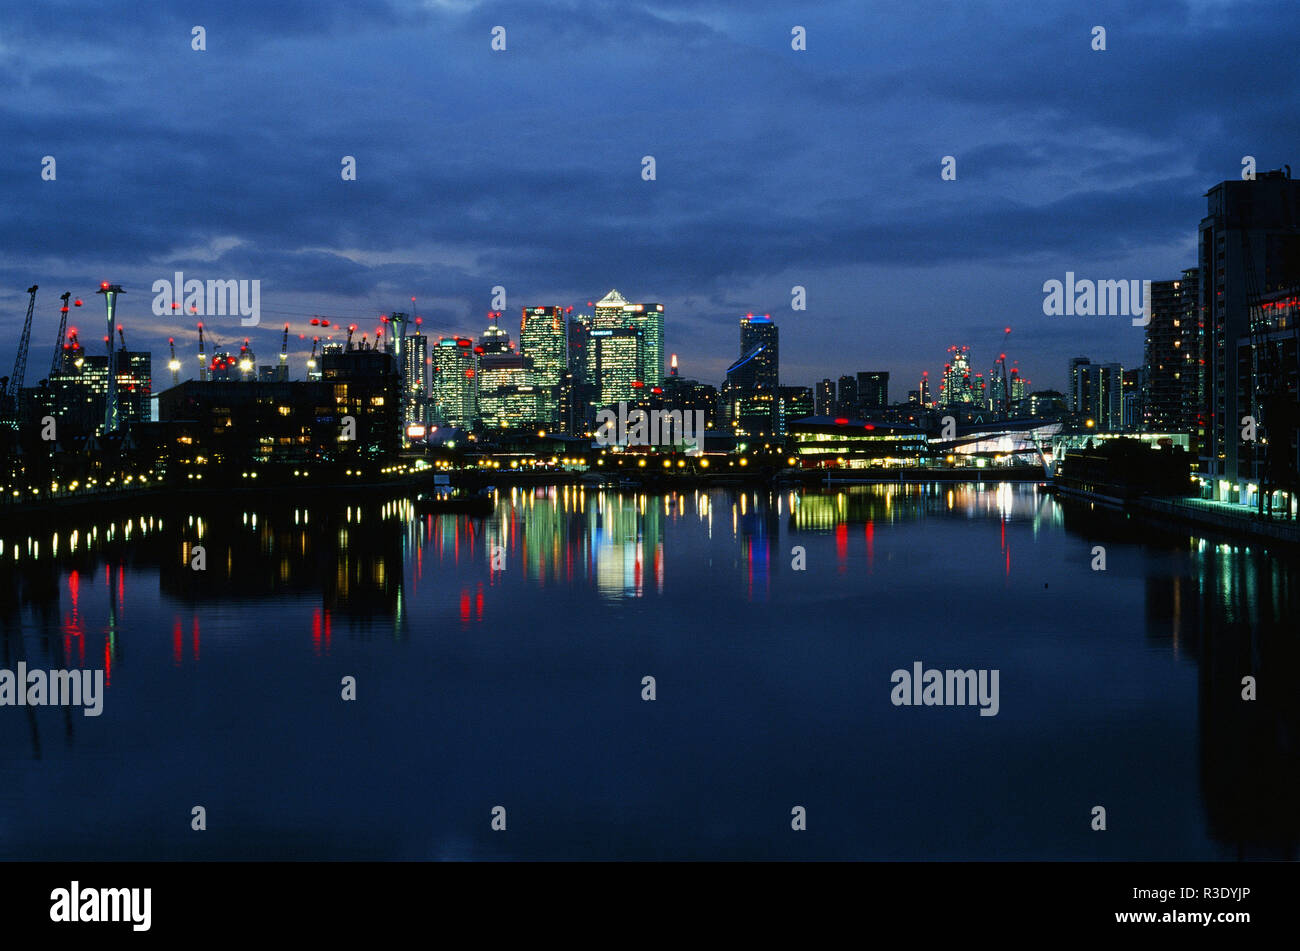 Canary Wharf and London Docklands at night, from Royal Victoria Dock - Stock Image